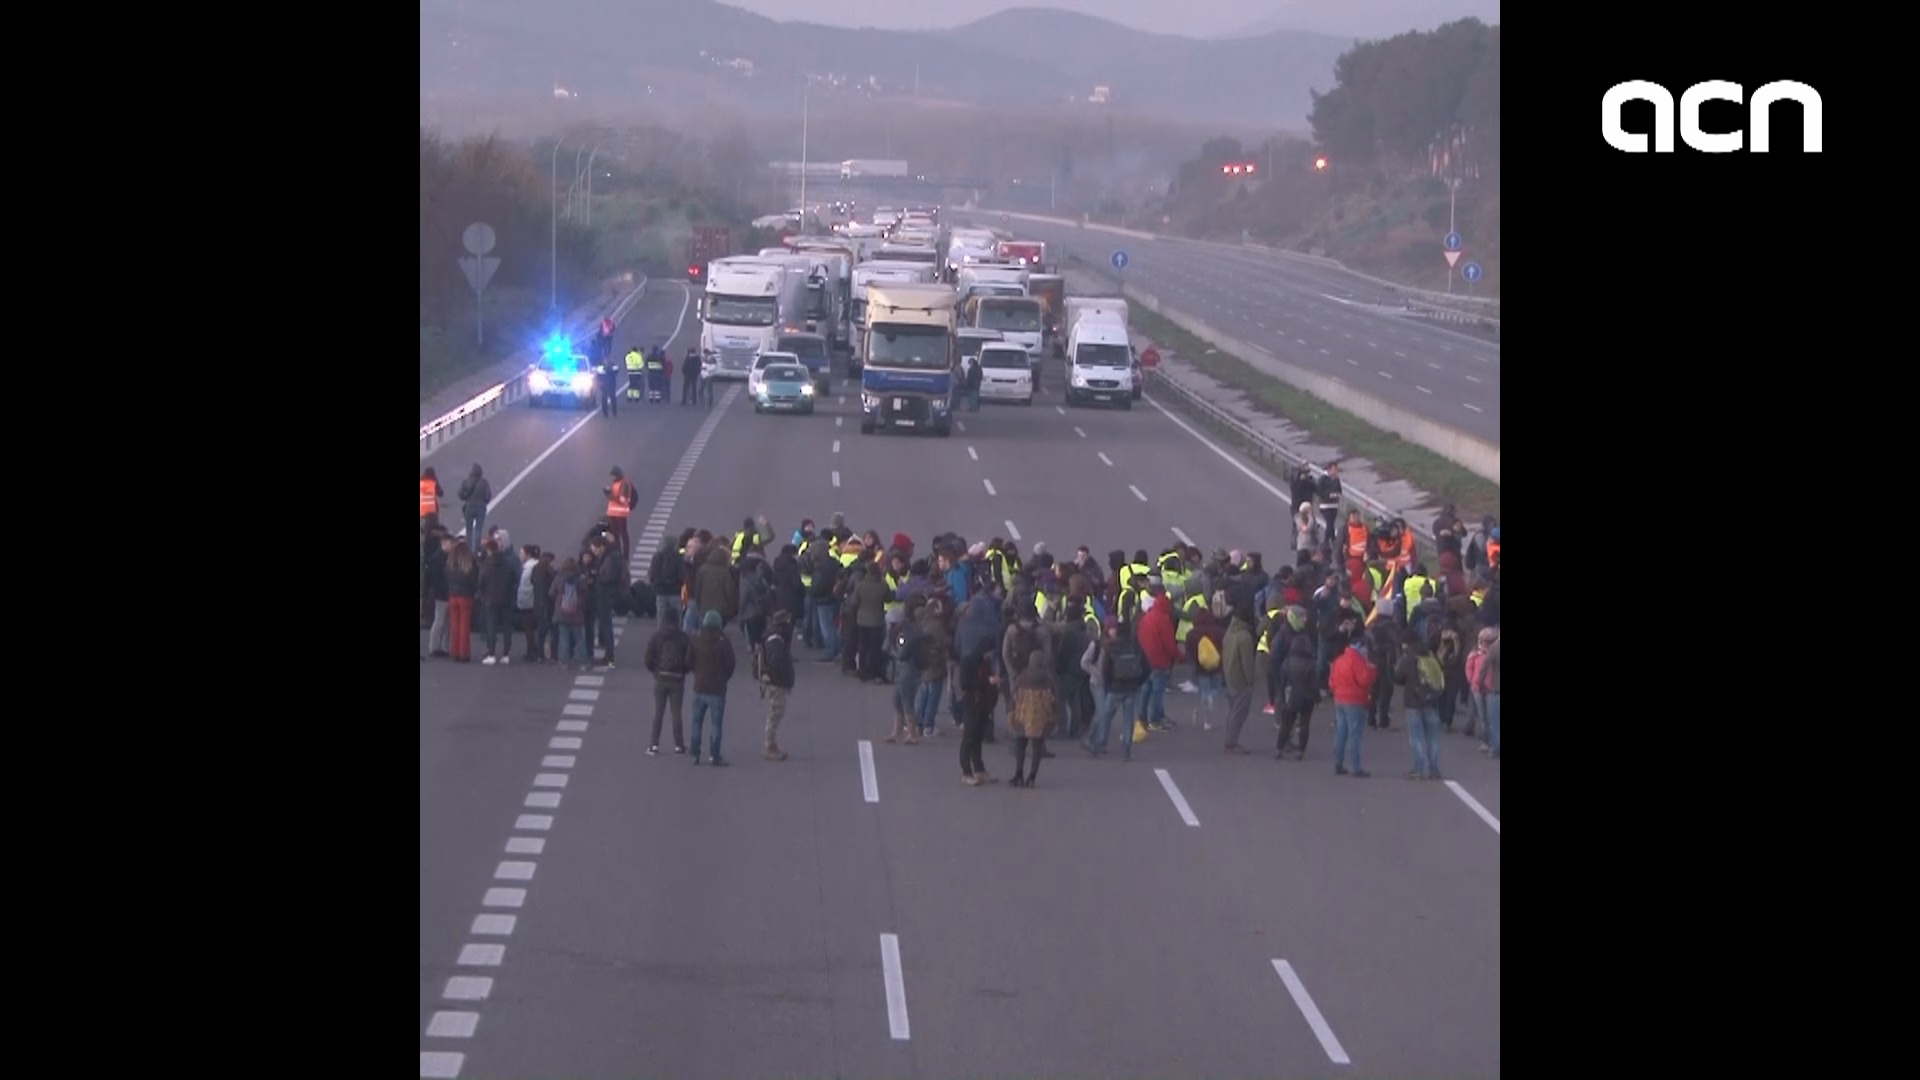 Widespread protests in Catalonia including road cuts to reject Spanish government visit